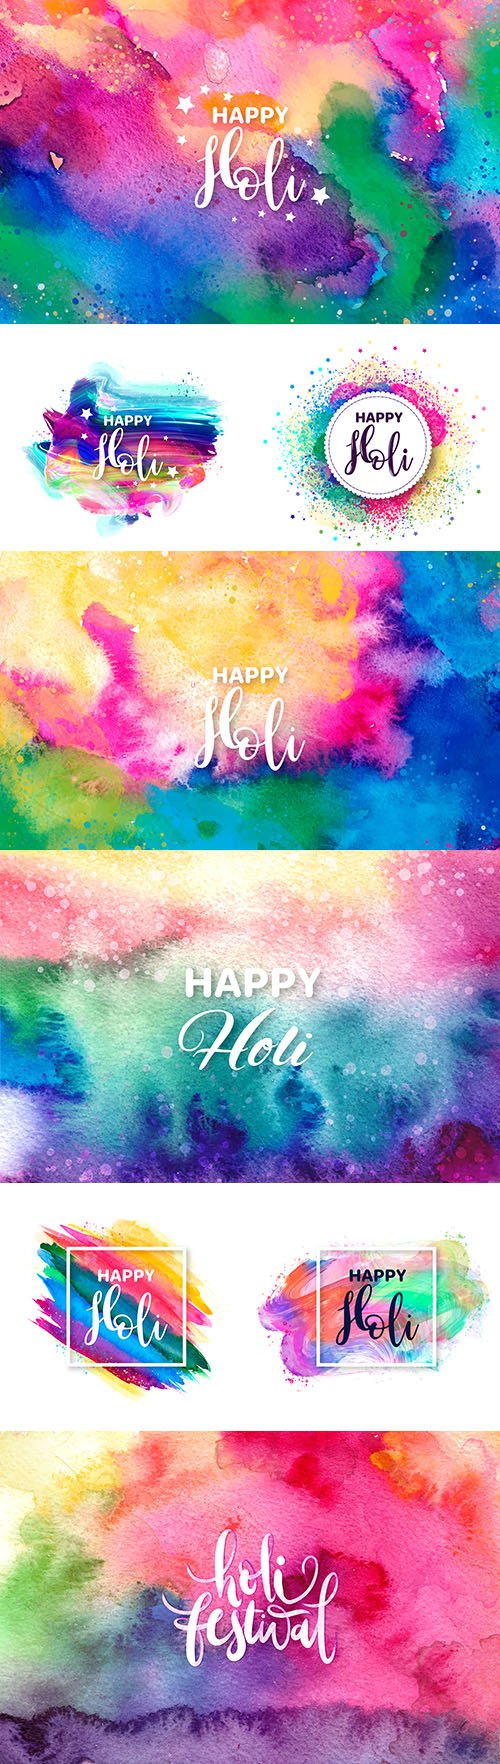 Happy Holi festival traditional watercolor illustration